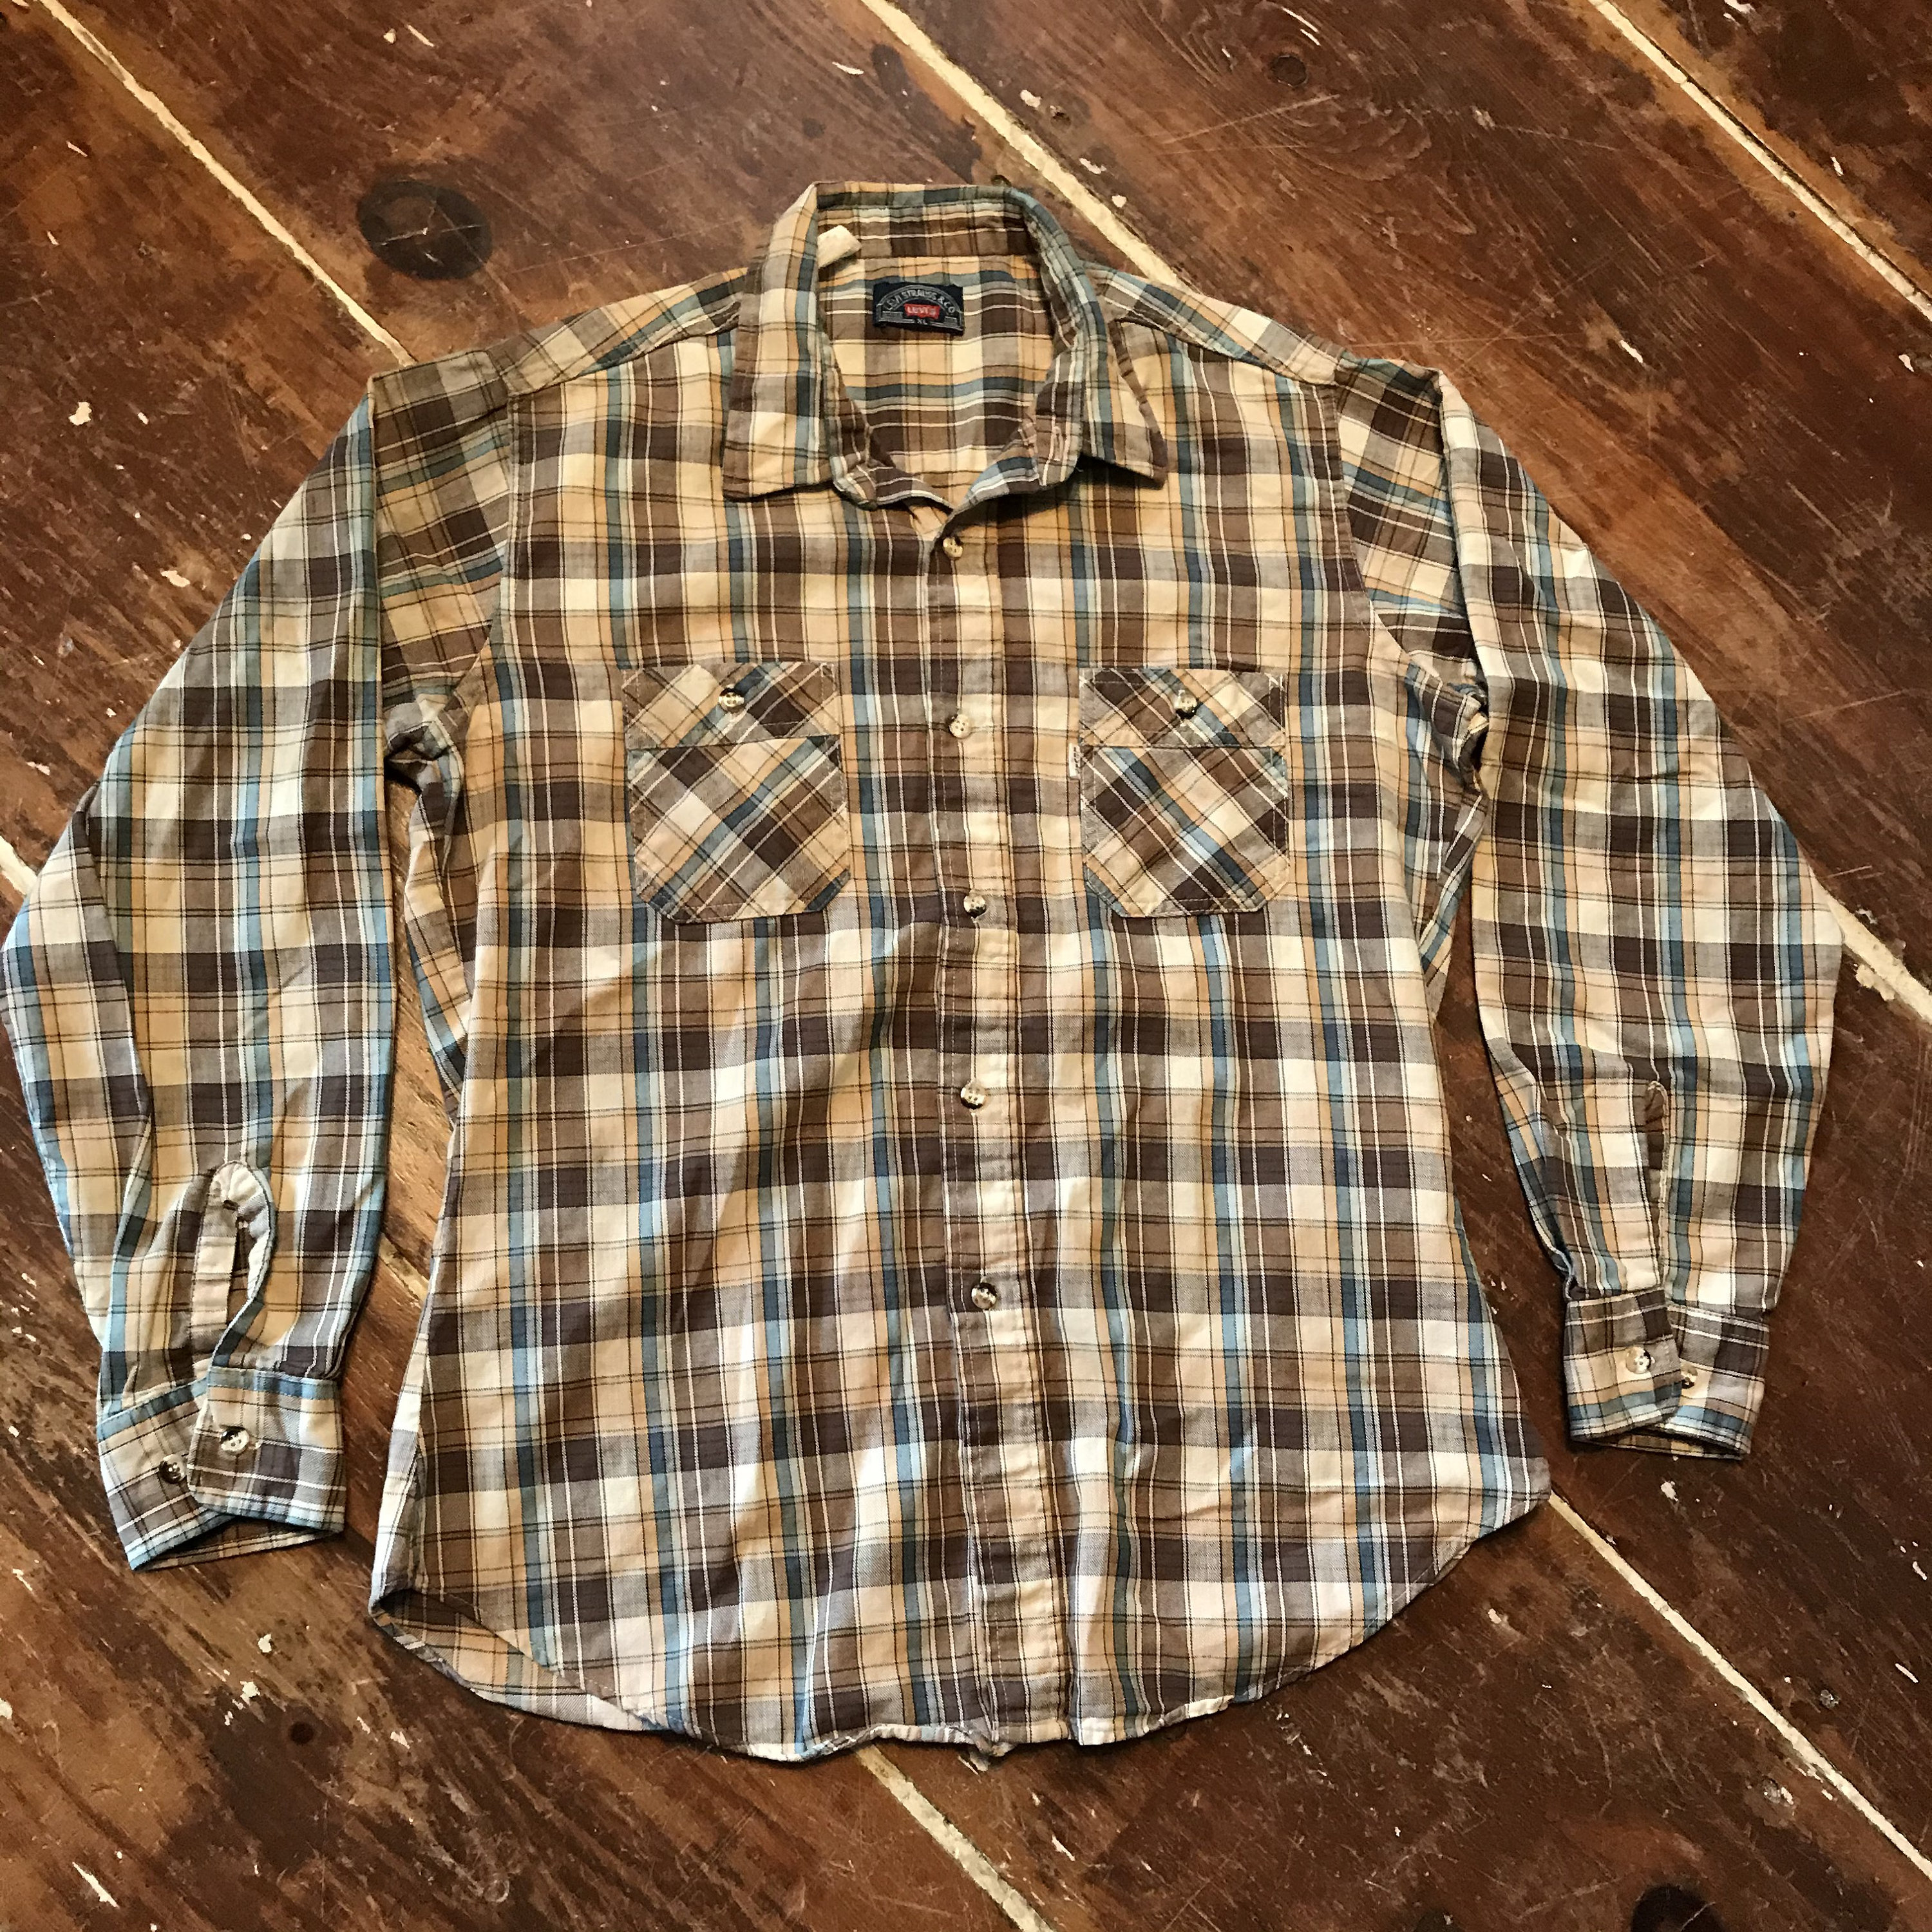 1970s Mens Shirt Styles – Vintage 70s Shirts for Guys Vintage Levis Cotton Twill Plaid Button Up Shirt  70S 80S Mens Xl Brown Usa Made $25.00 AT vintagedancer.com